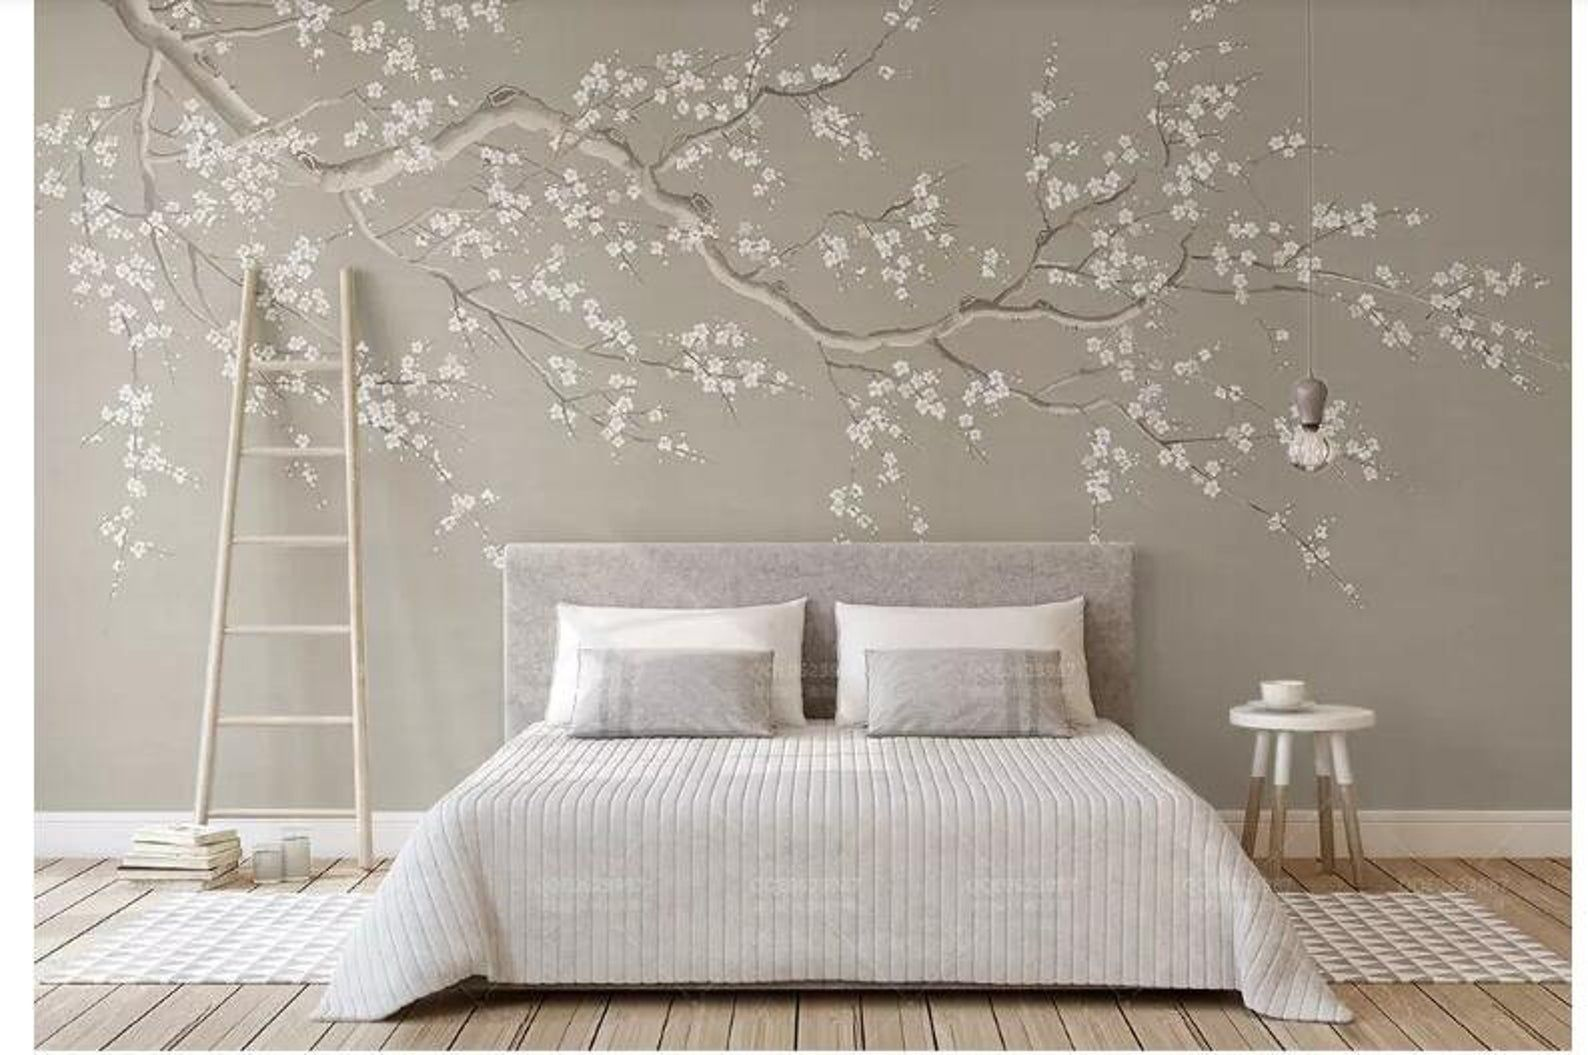 One Large Crooked Cherry Branch Wallpaper Wall Mural Abstract Cherry Blossom Flowers And Birds Chinoiserie Wall Mural Wall Decor Teenager Schlafzimmer Dekorieren Schlafzimmer Dekorieren Tapeten Wandbilder